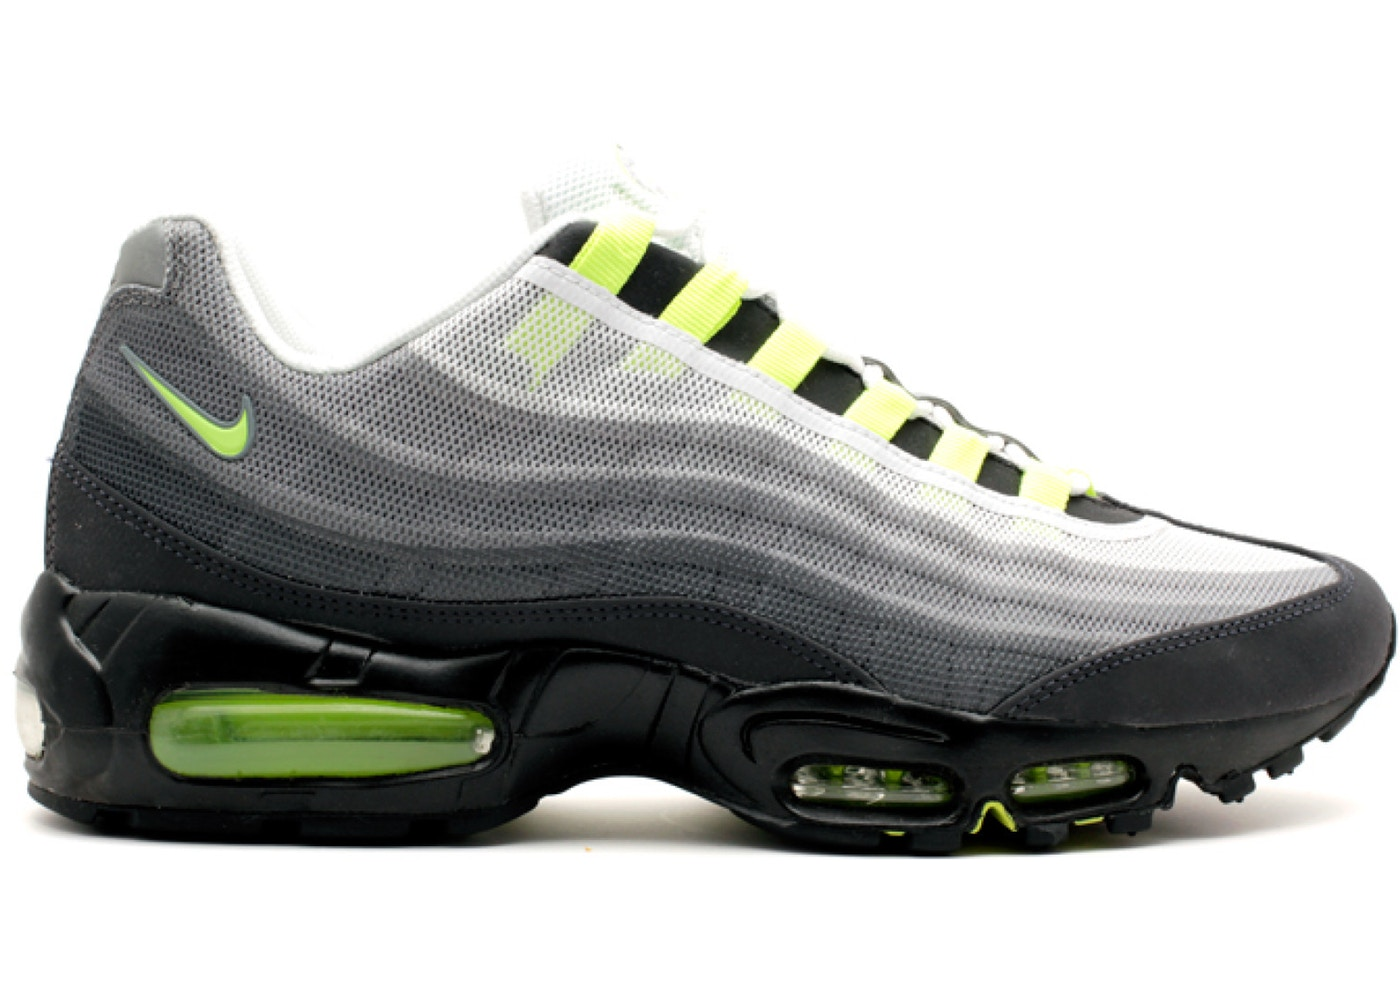 new style 6b1c8 69b6e Sell. or Ask. Size 9. View All Bids. Air Max 95 Premium Tape Neon